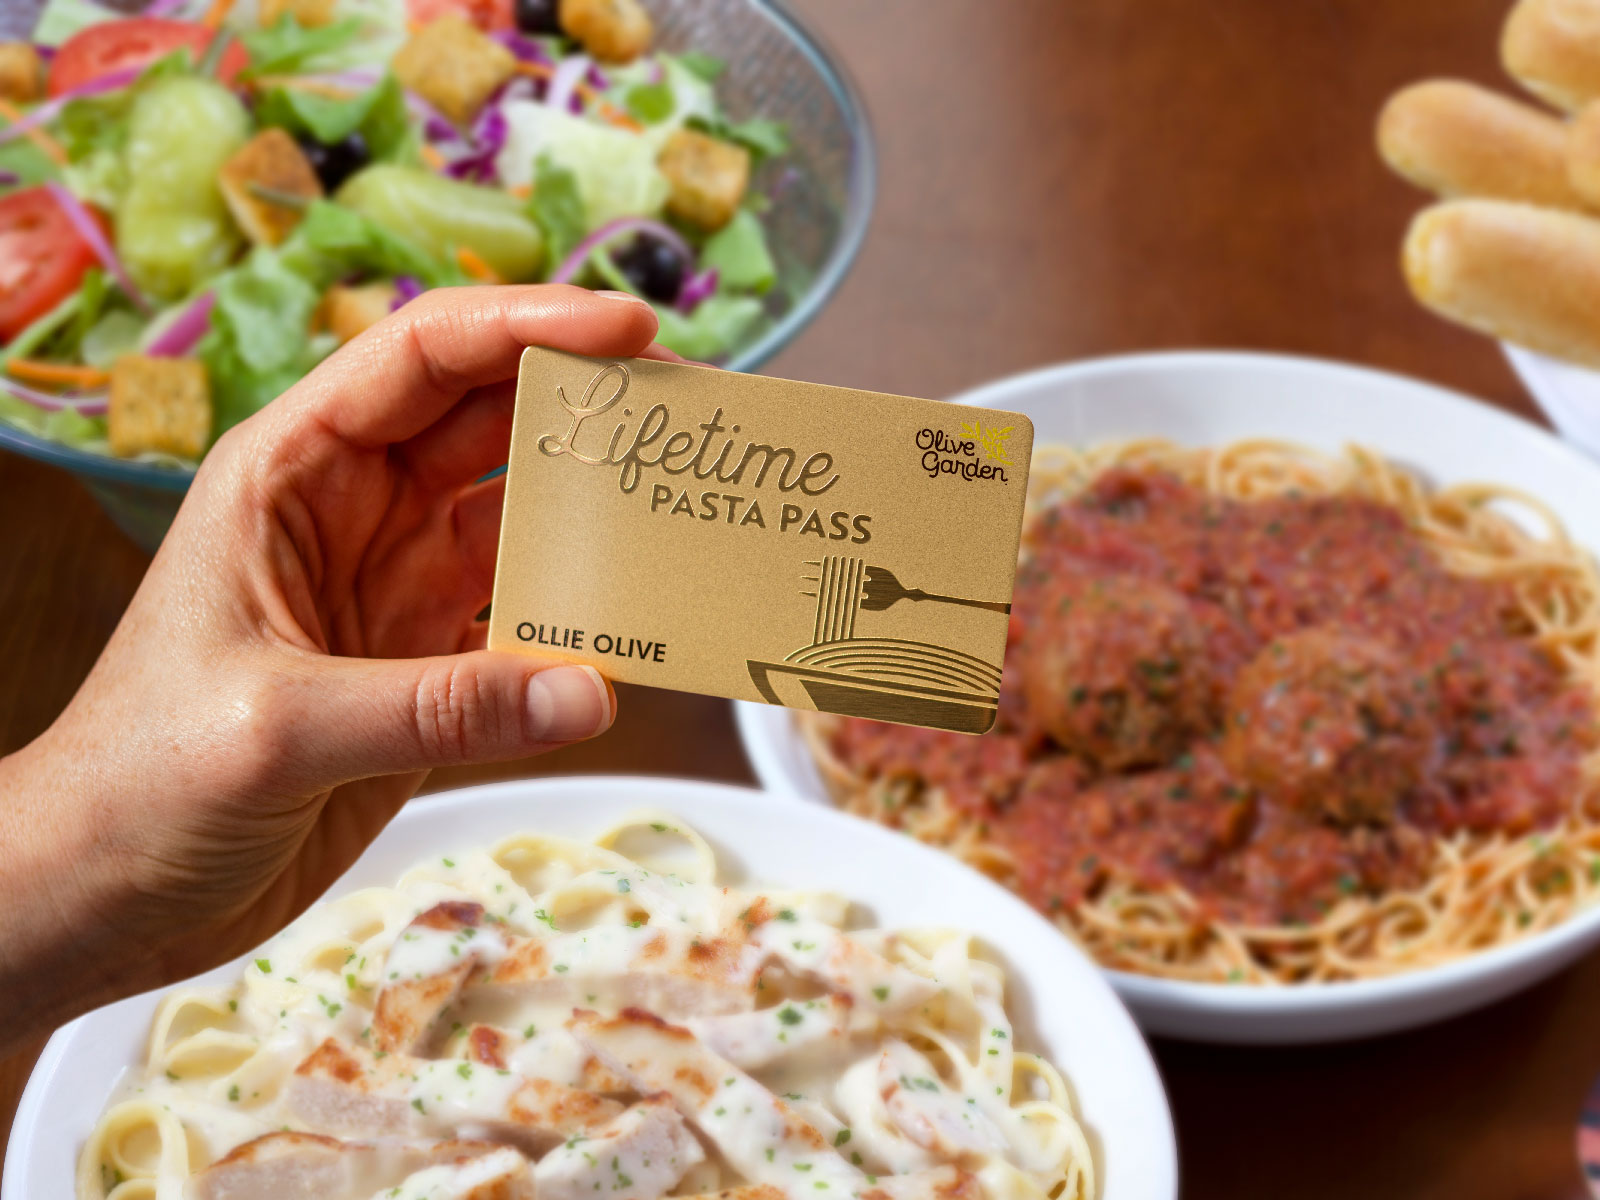 olive-garden-lifetime-pass-FT-BLOG0819.jpg